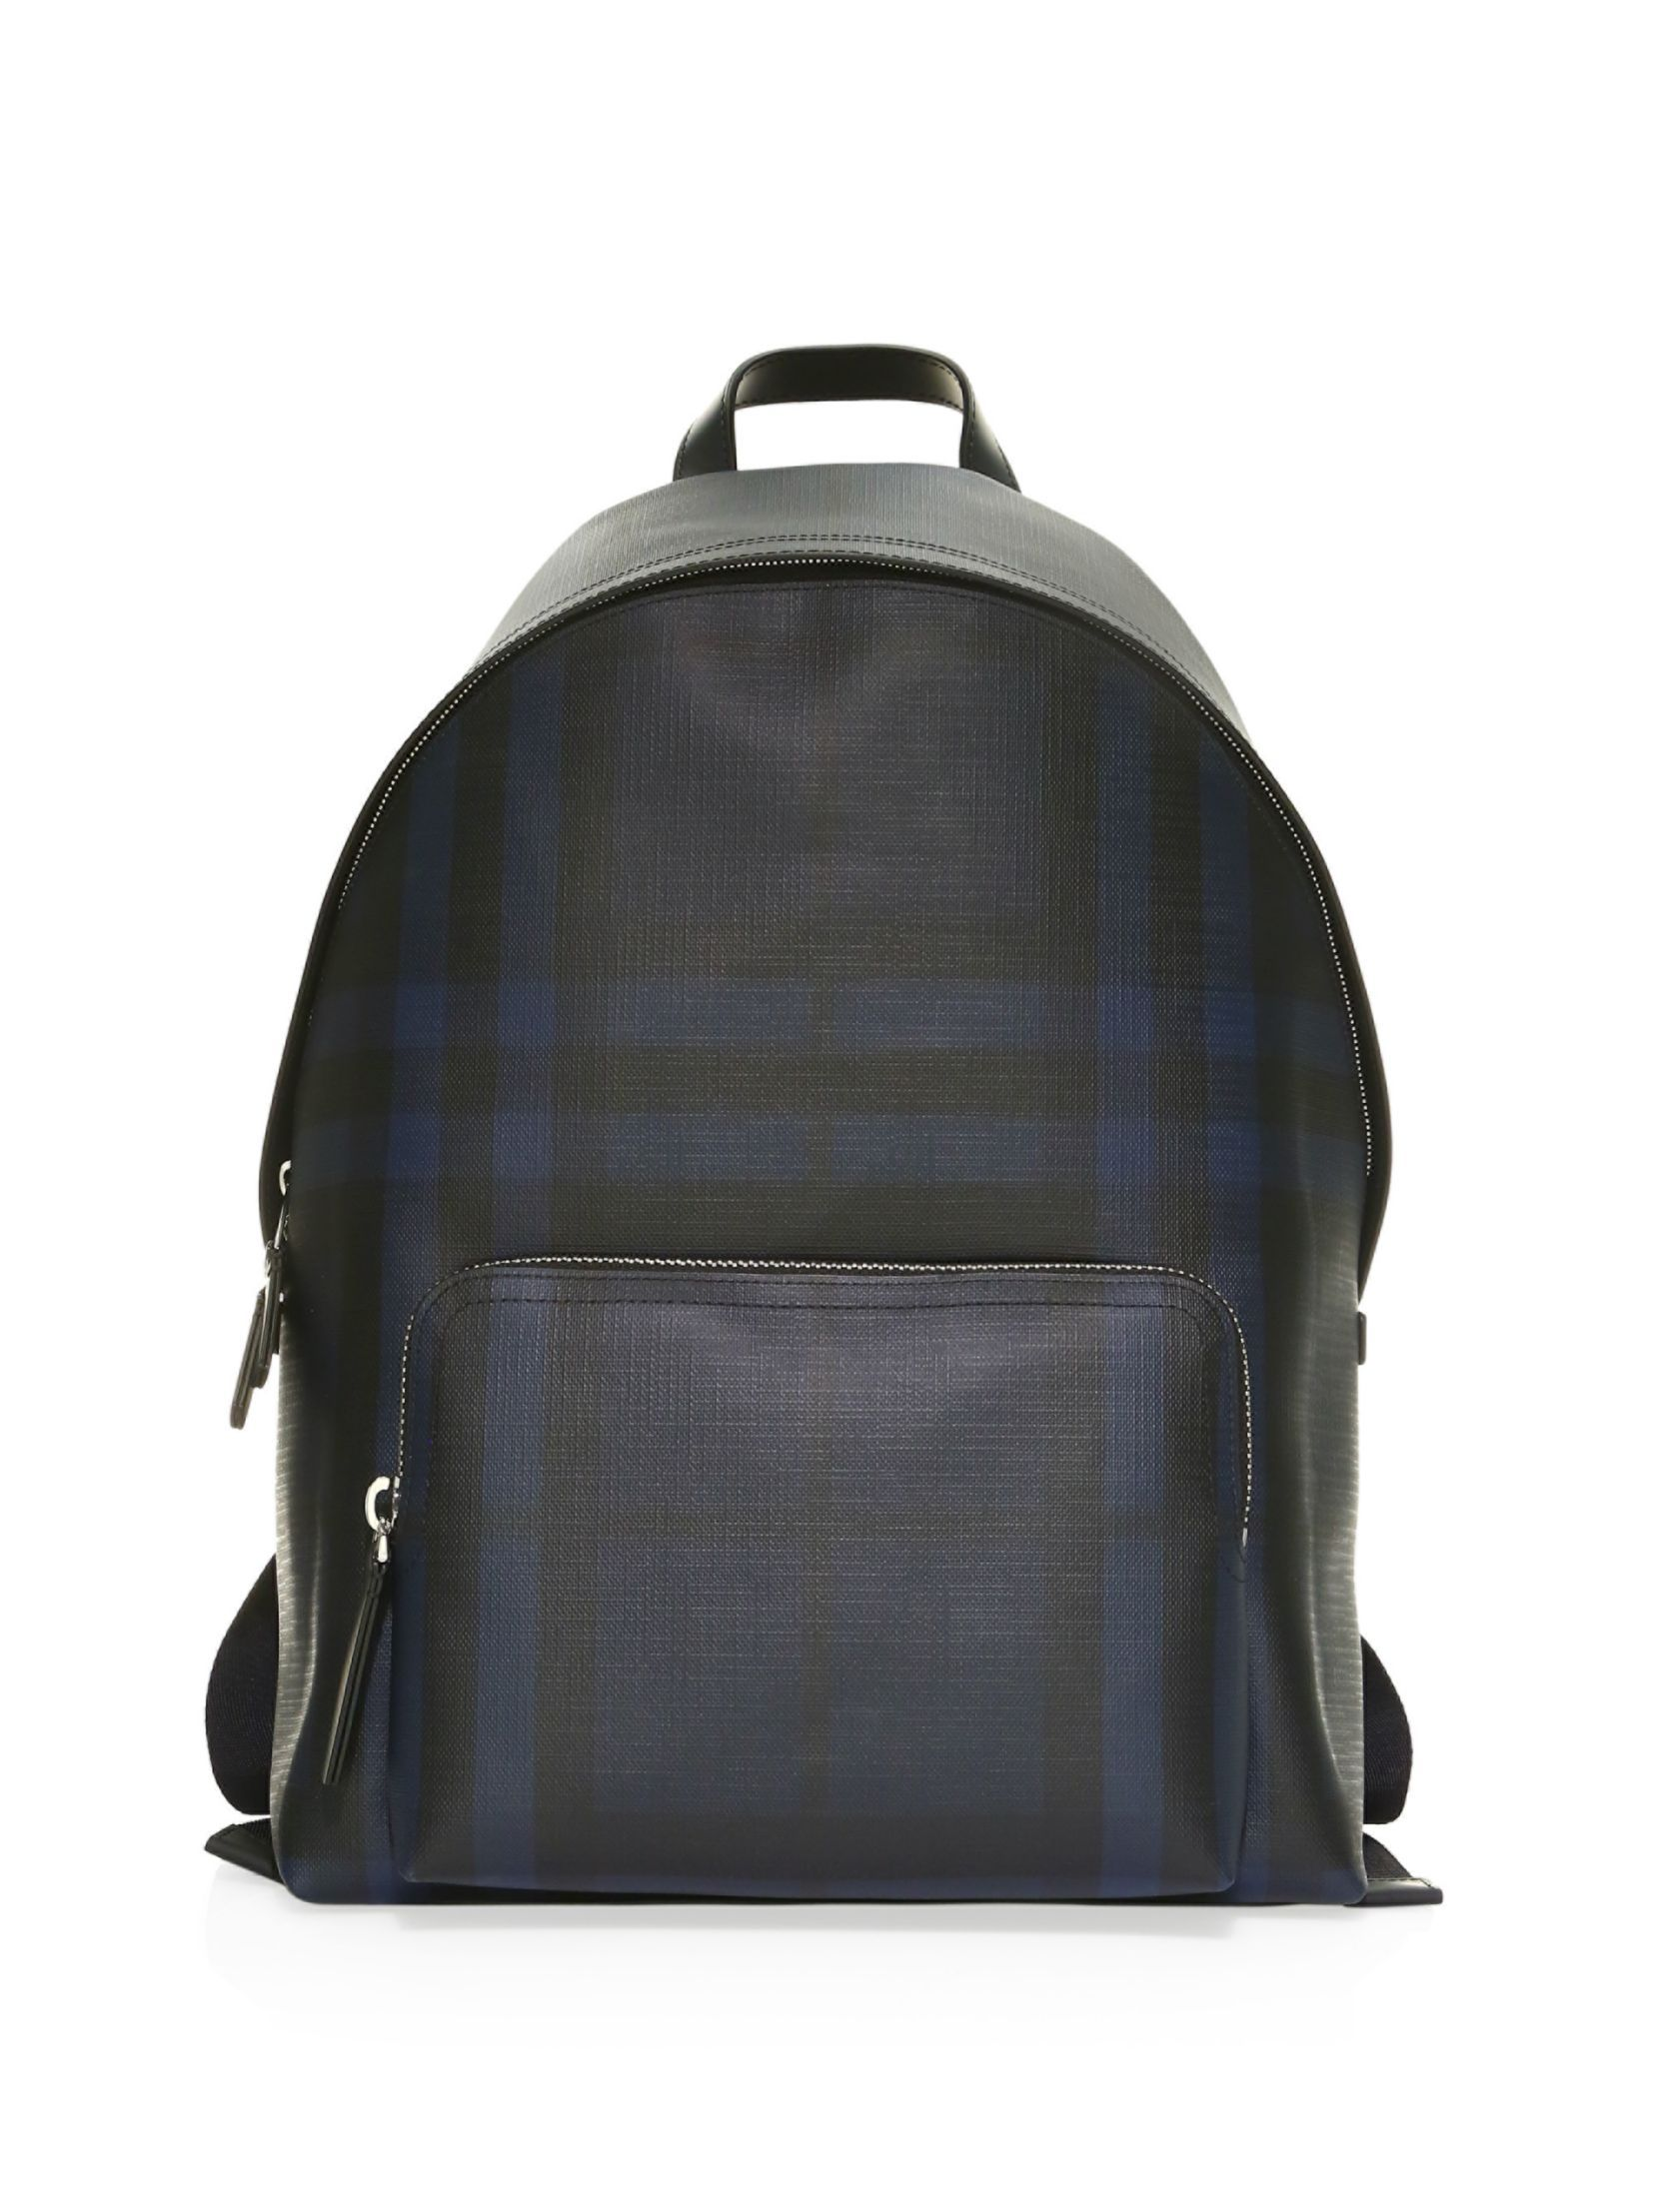 9bcd9a1771 Burberry London Check Abbeydale Backpack